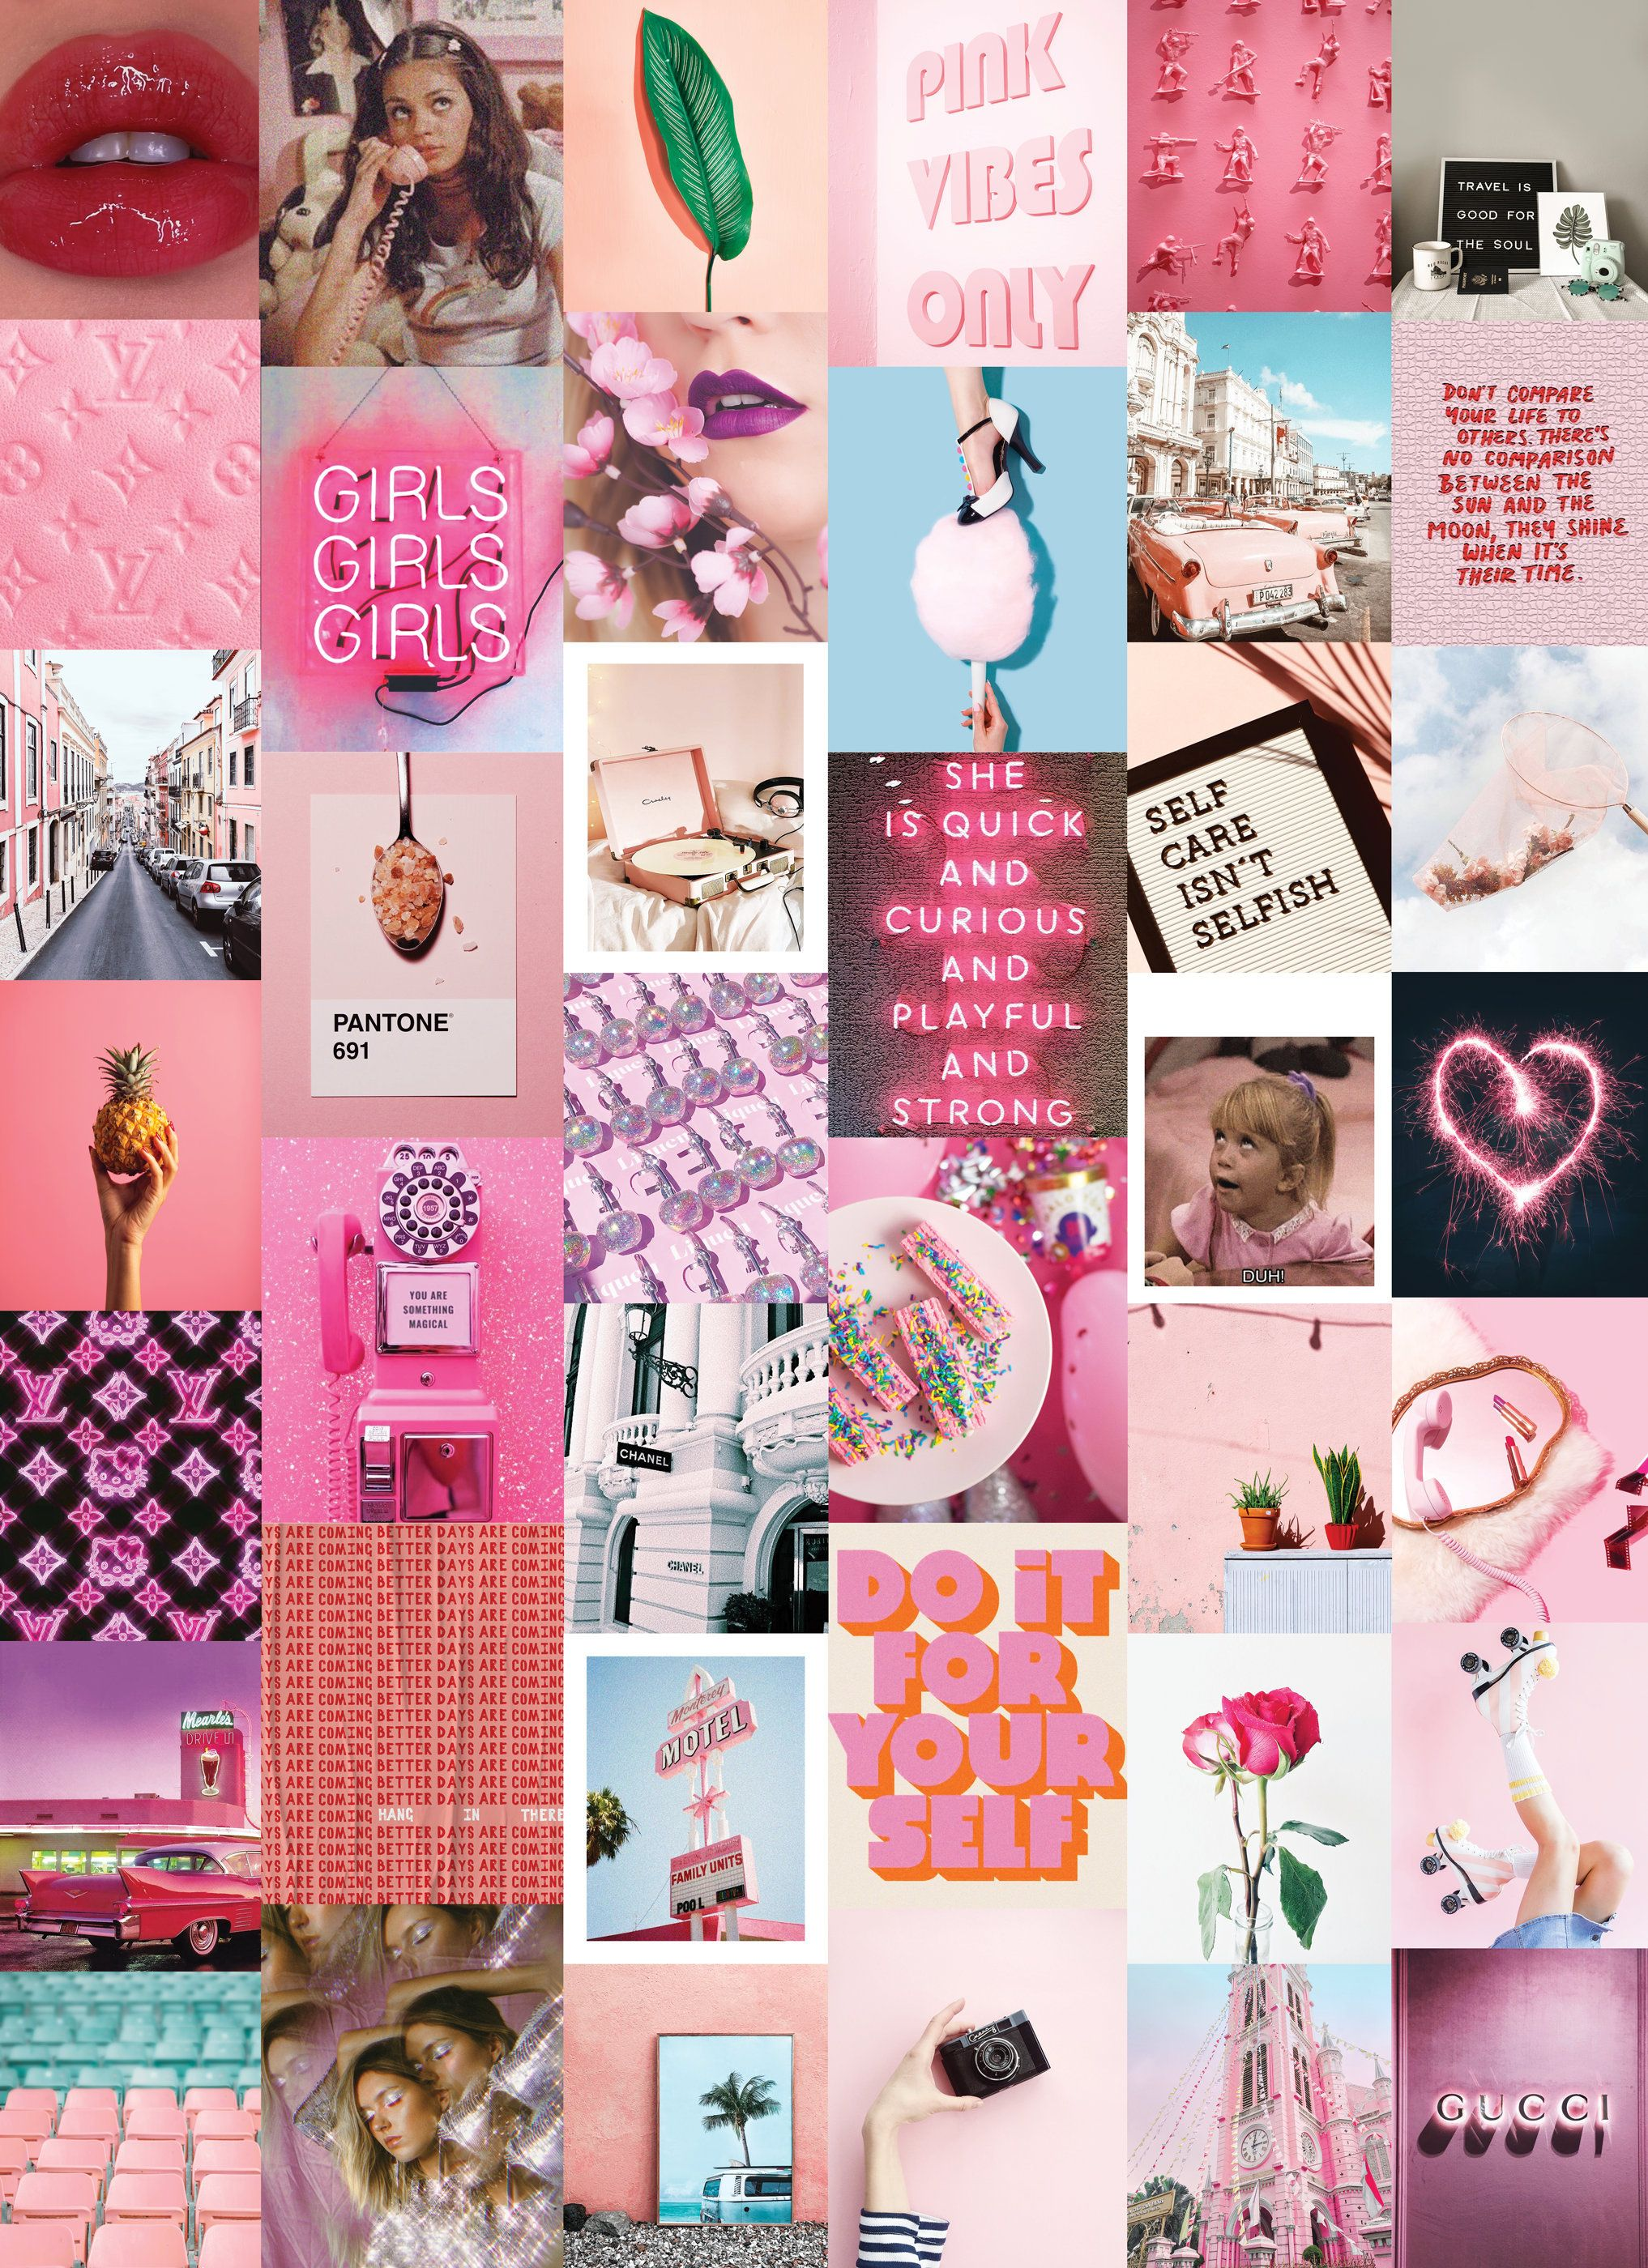 Neon Pink Wall Collage Kit Digital Etsy In 2020 Wall Collage Wall Collage Decor Pink Walls